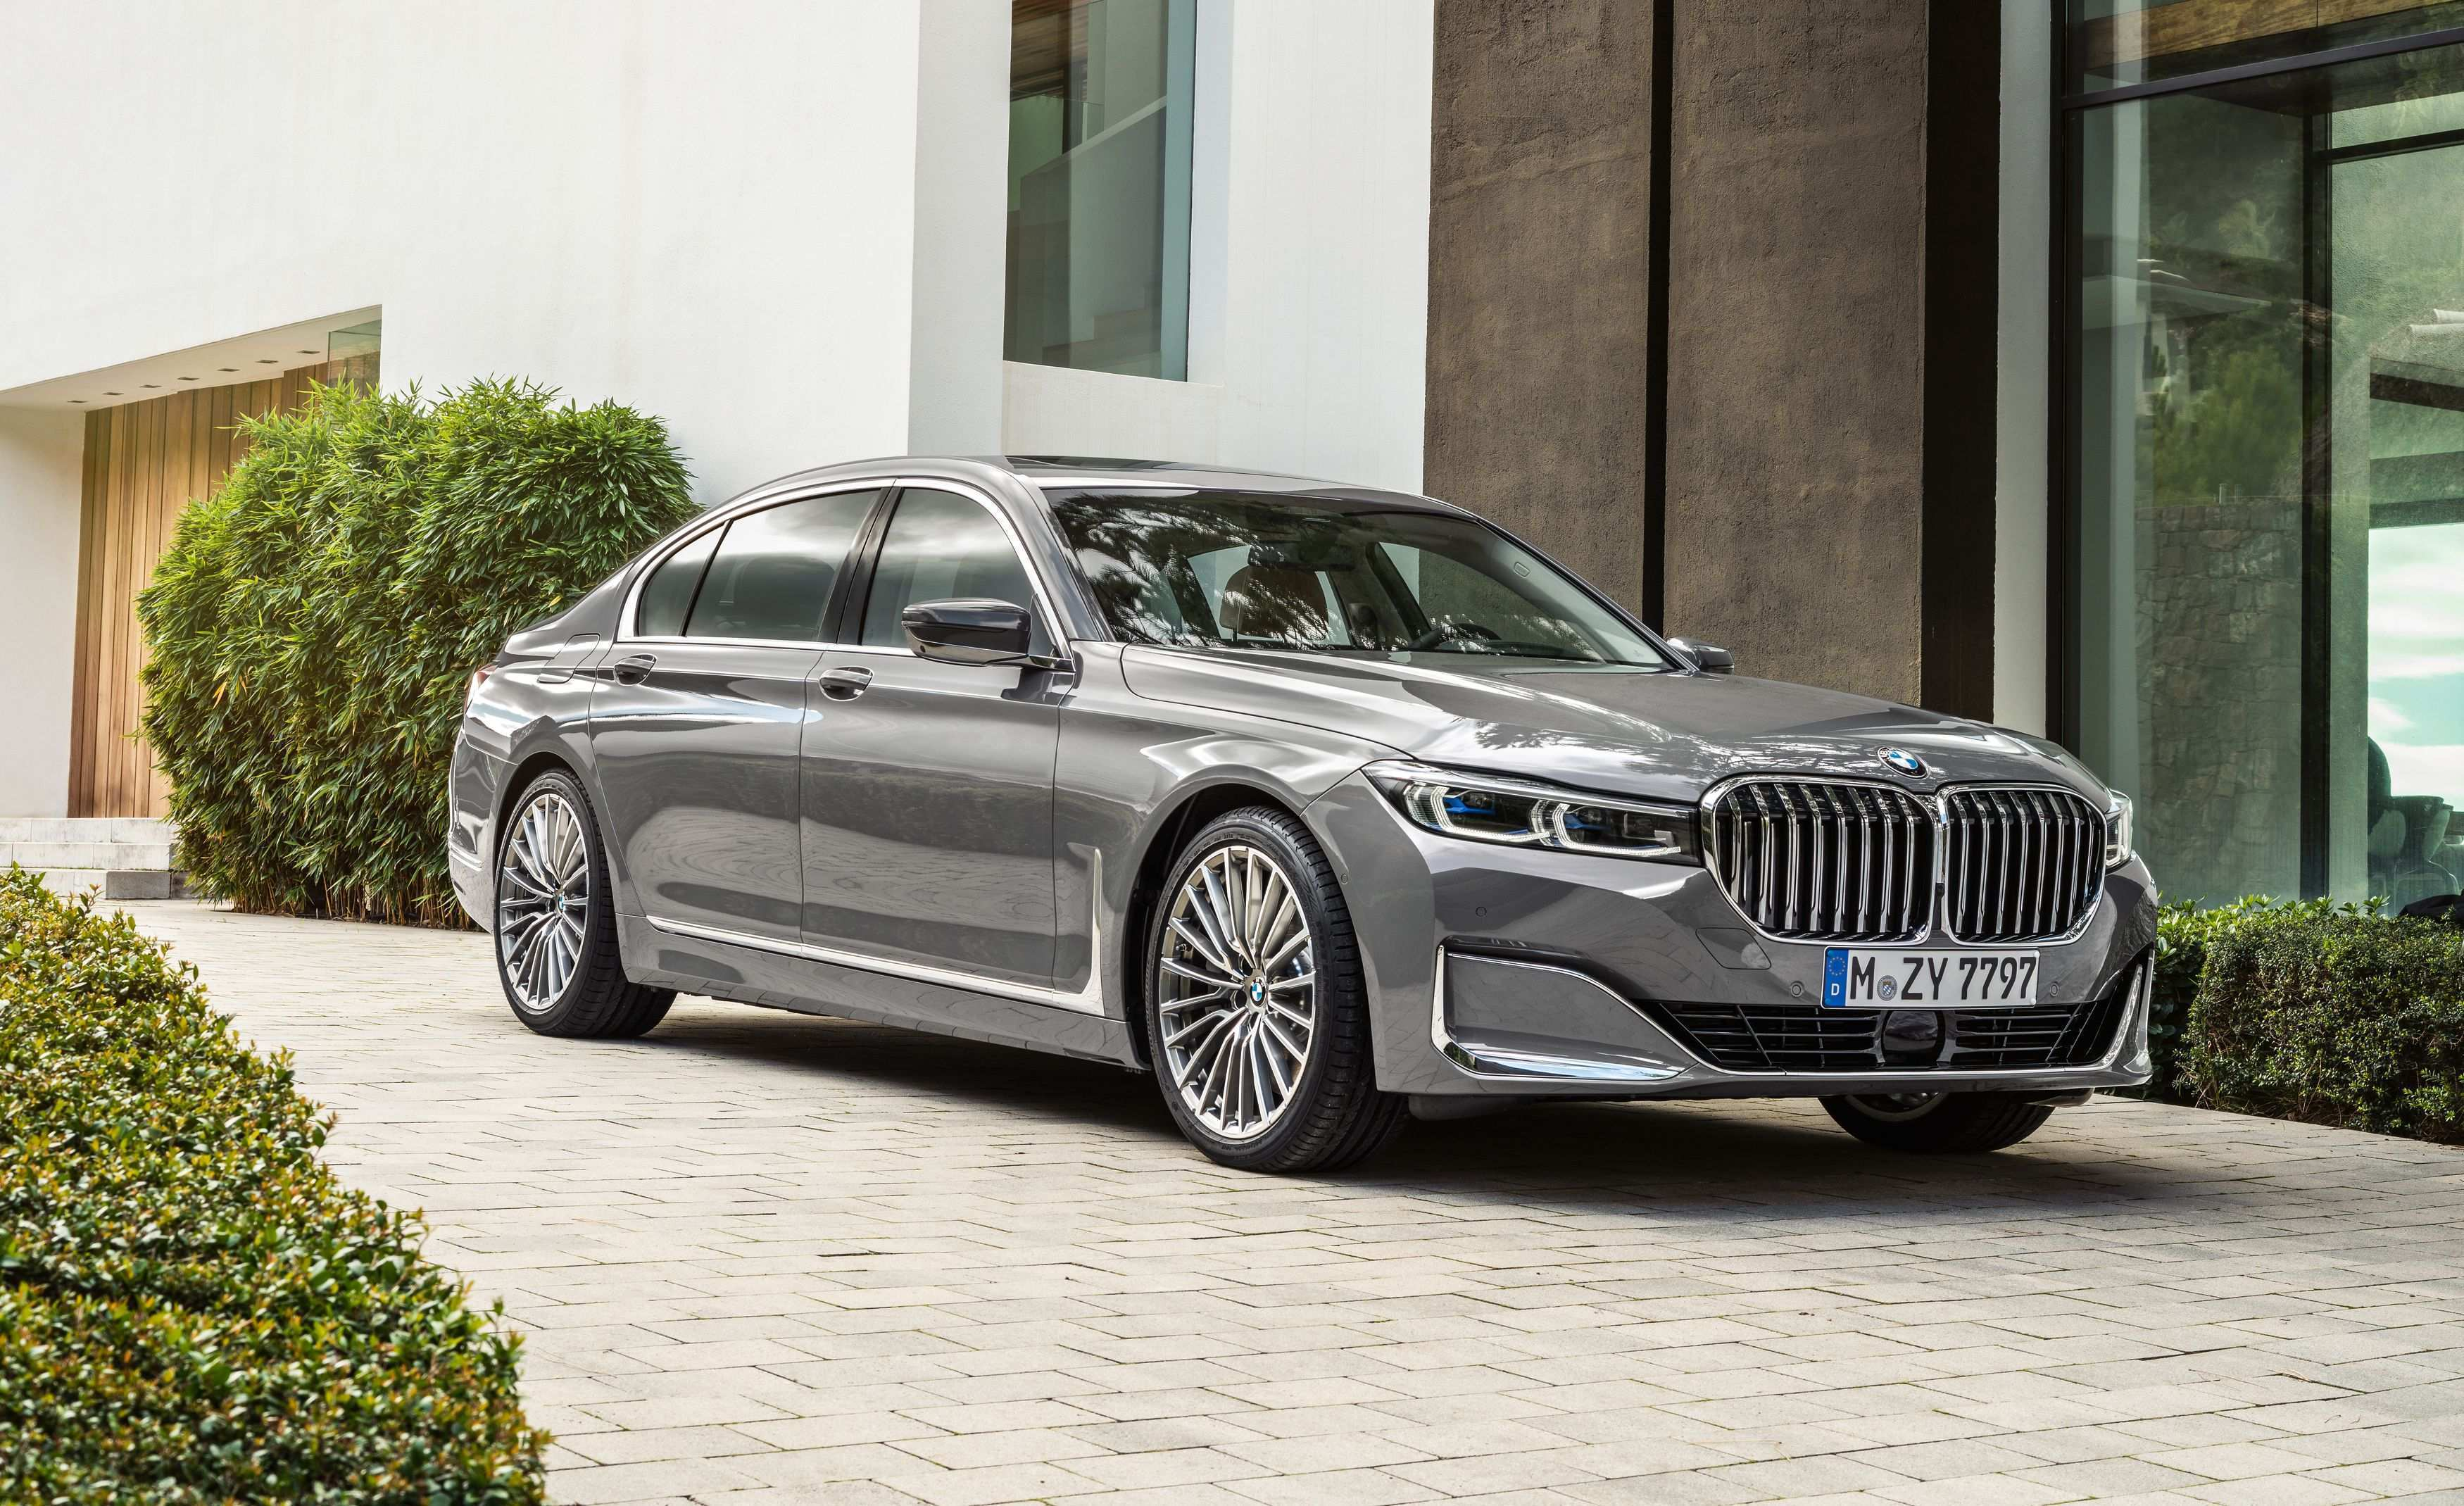 51 The Best BMW 7 Series 2020 Vs 2019 Release Date And Concept